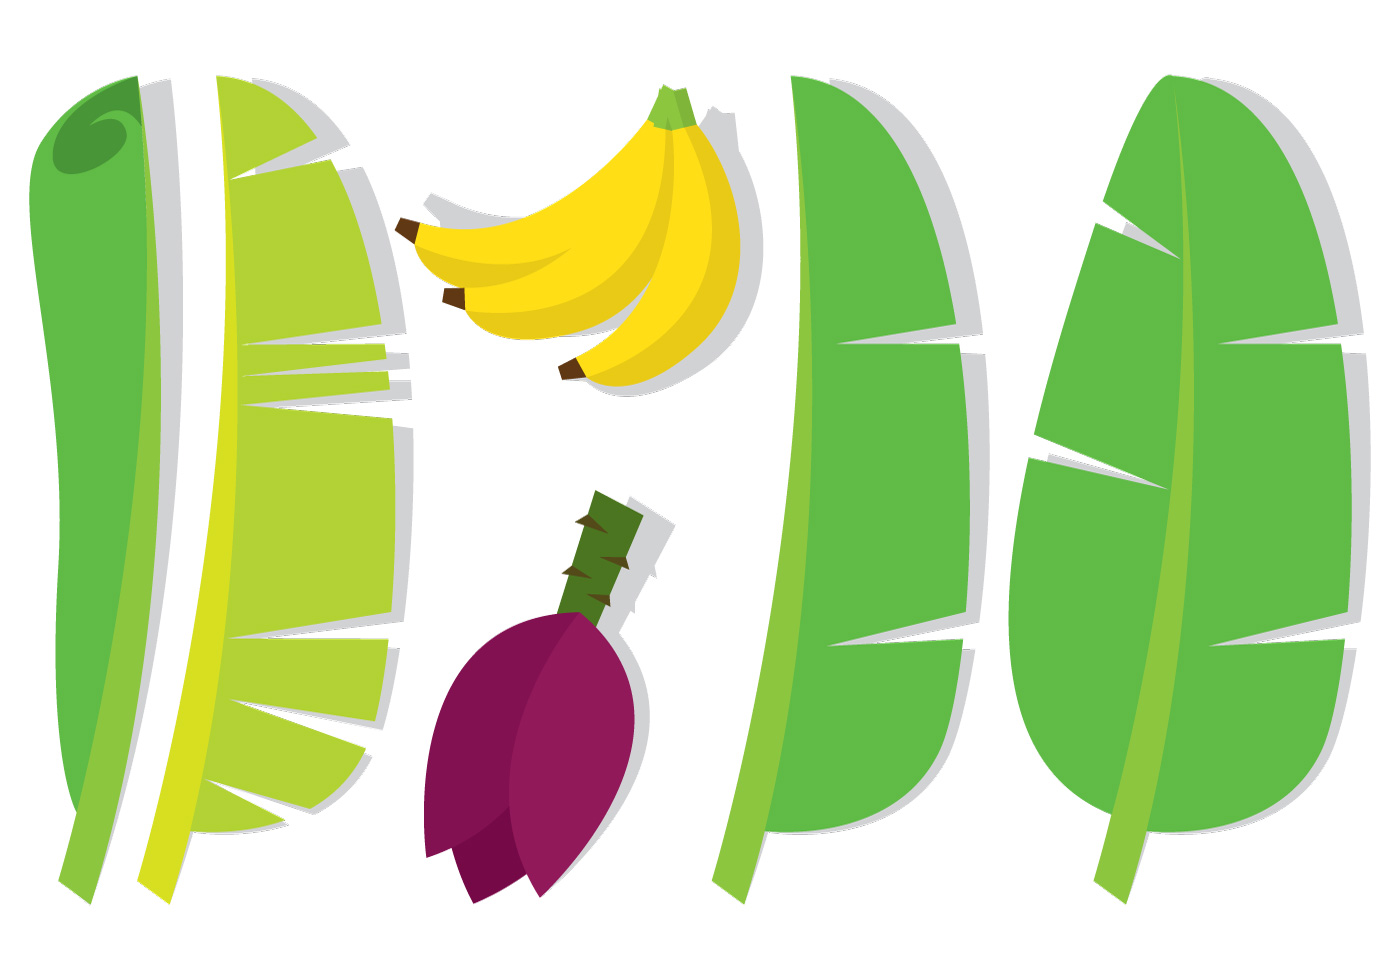 ... Leaf and Fruit - Download Free Vector Art, Stock Graphics & Images